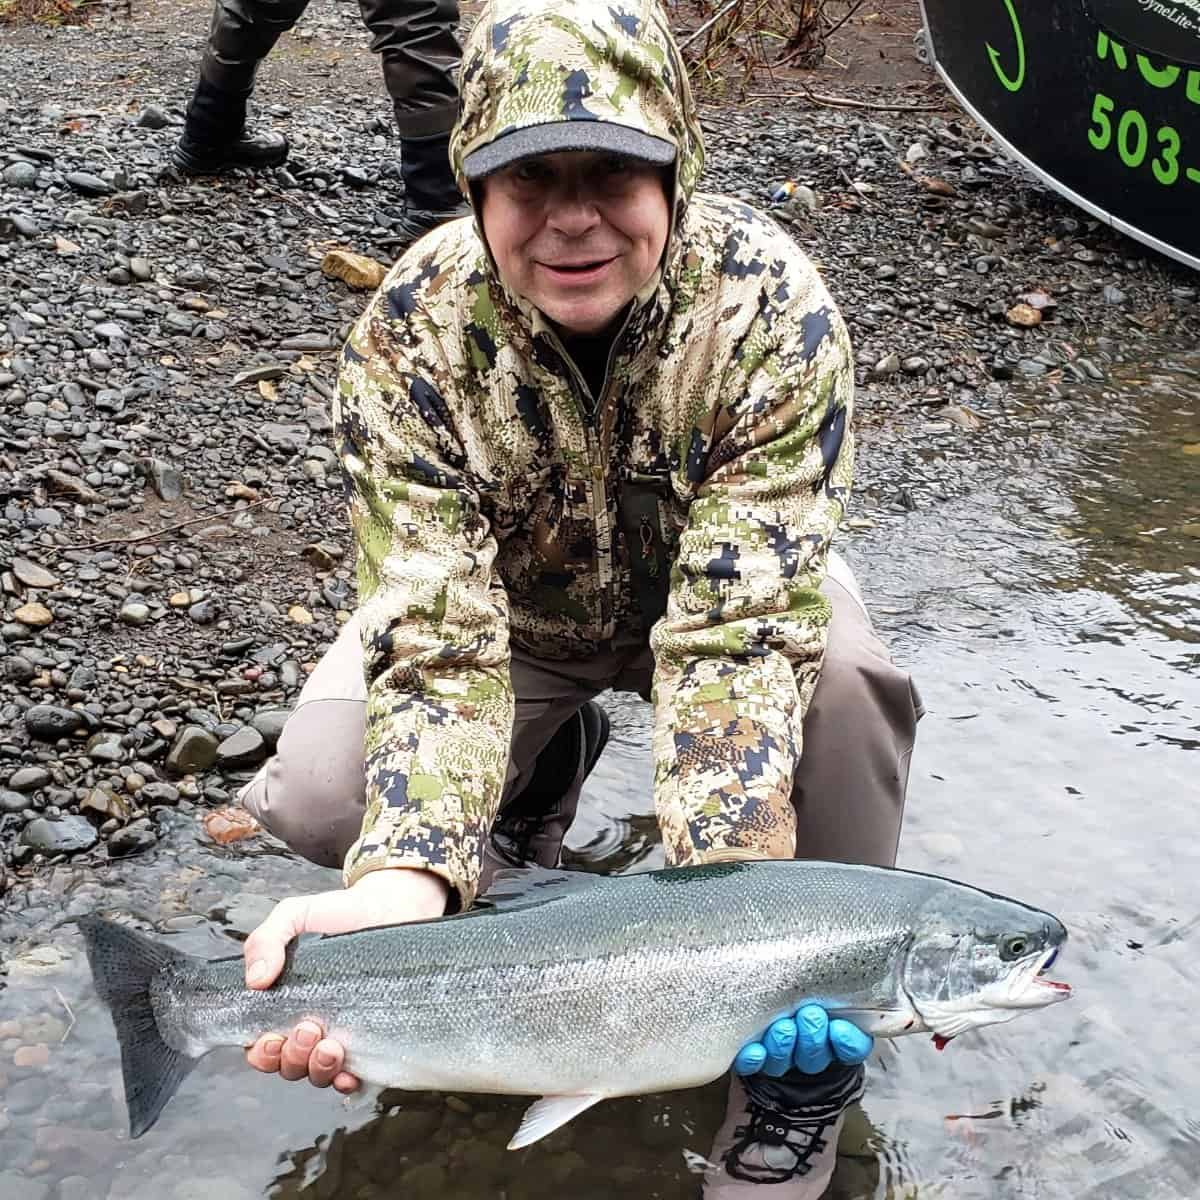 North Coast Fishing Report and Forecast April 5th, 2019